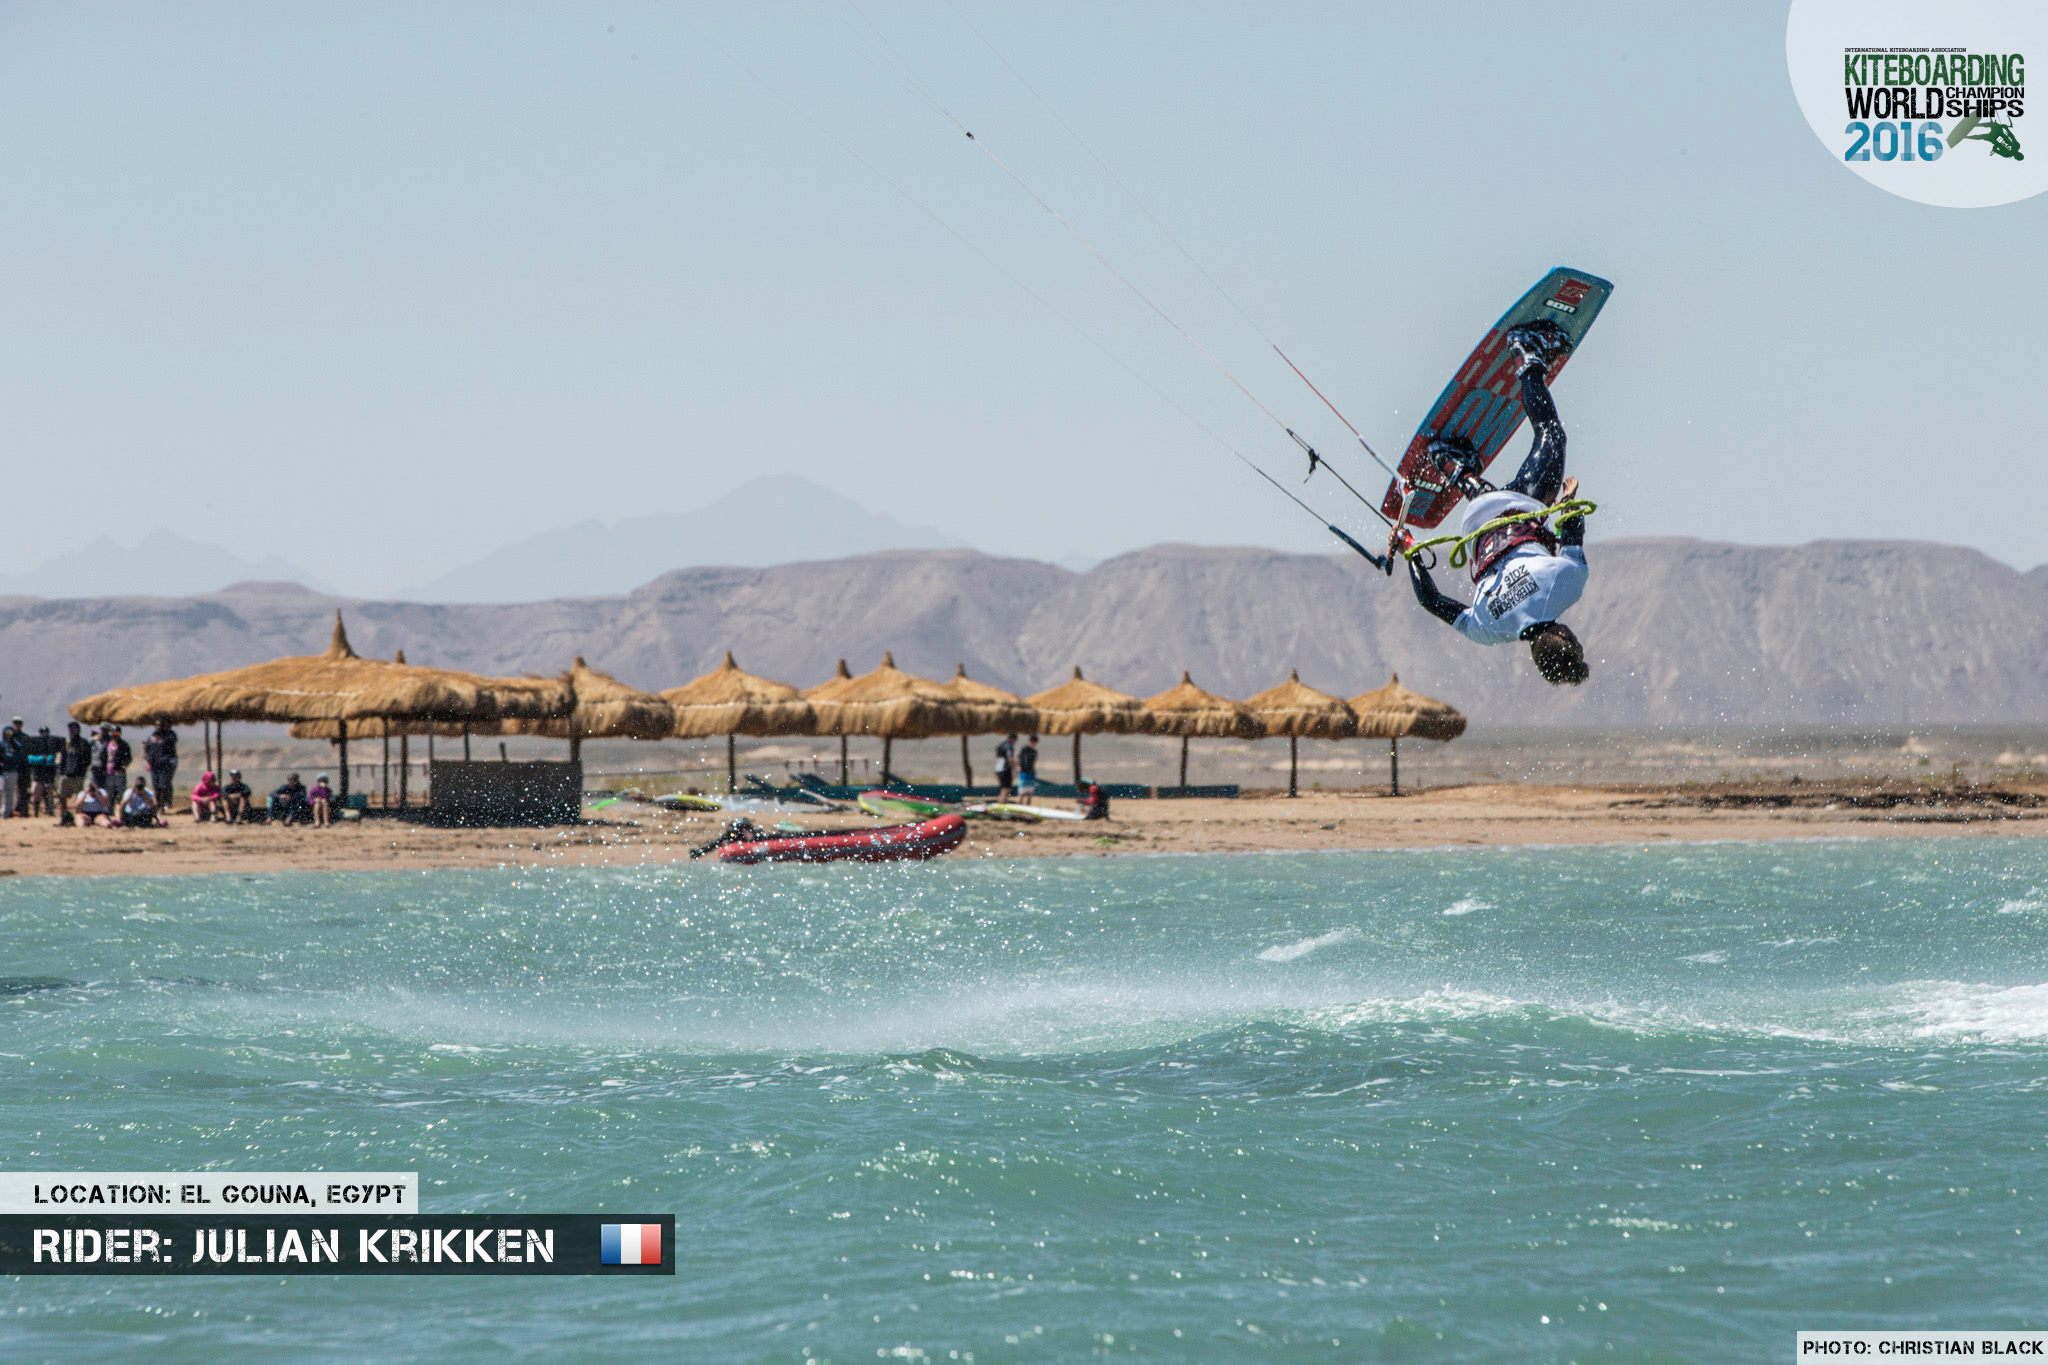 Julian Krikken freestyle 2016 El Gouna Grand Slam Day 2